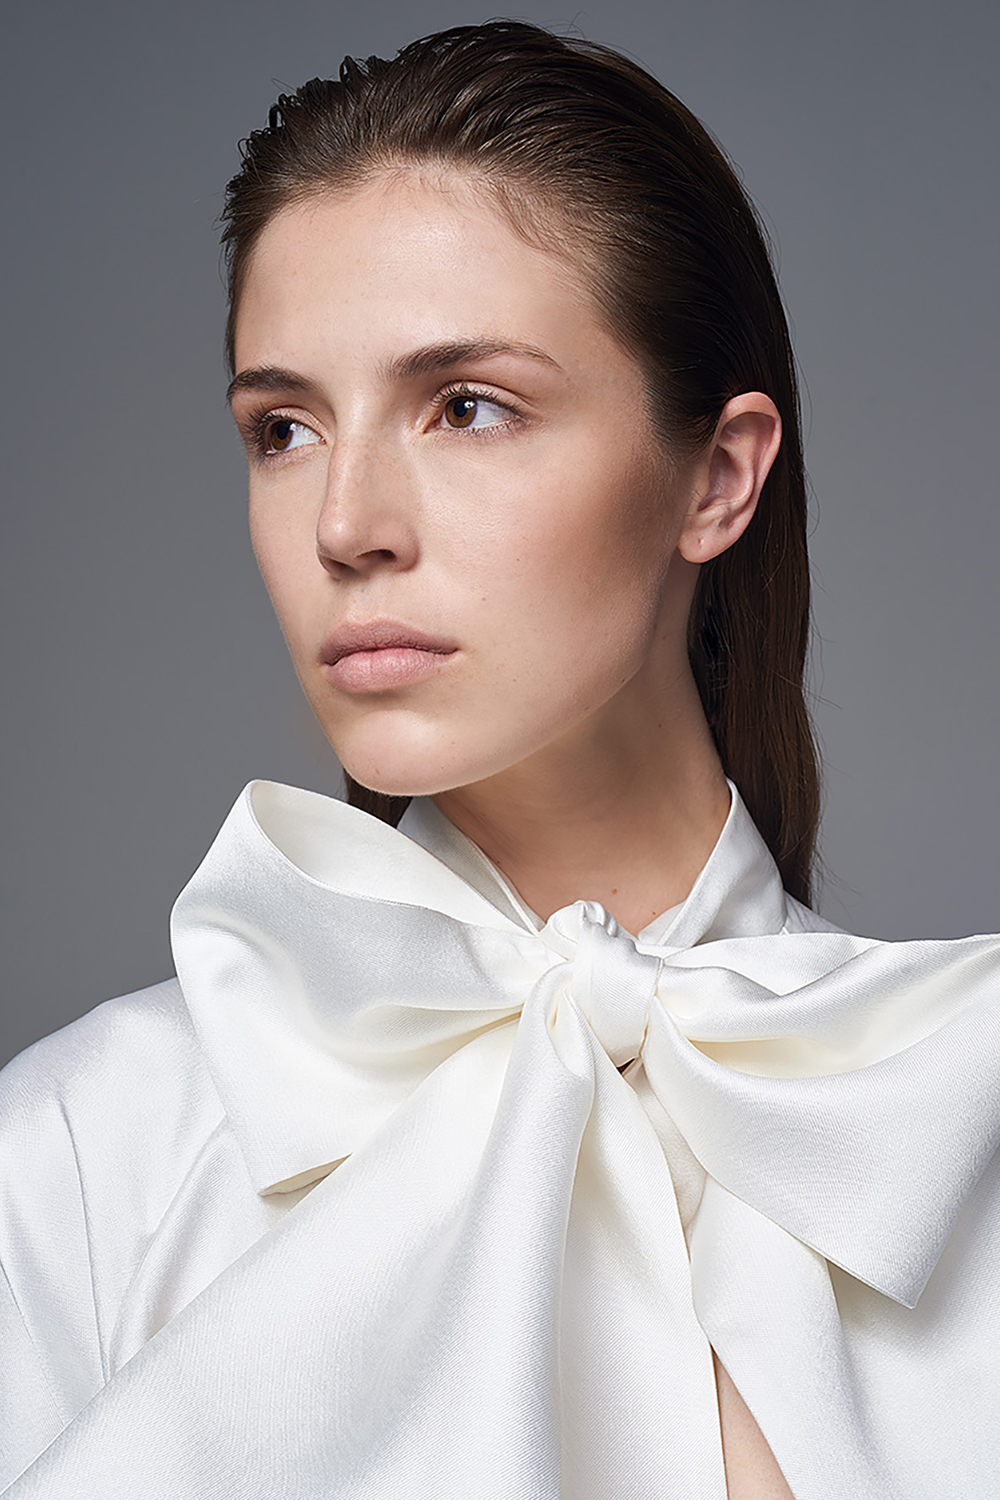 DETAIL VIEW OF THE BOW JACKET WITH ALEXA SKIRT TWO PIECE BRIDAL WEDDING DRESS BY HALFPENNY LONDON